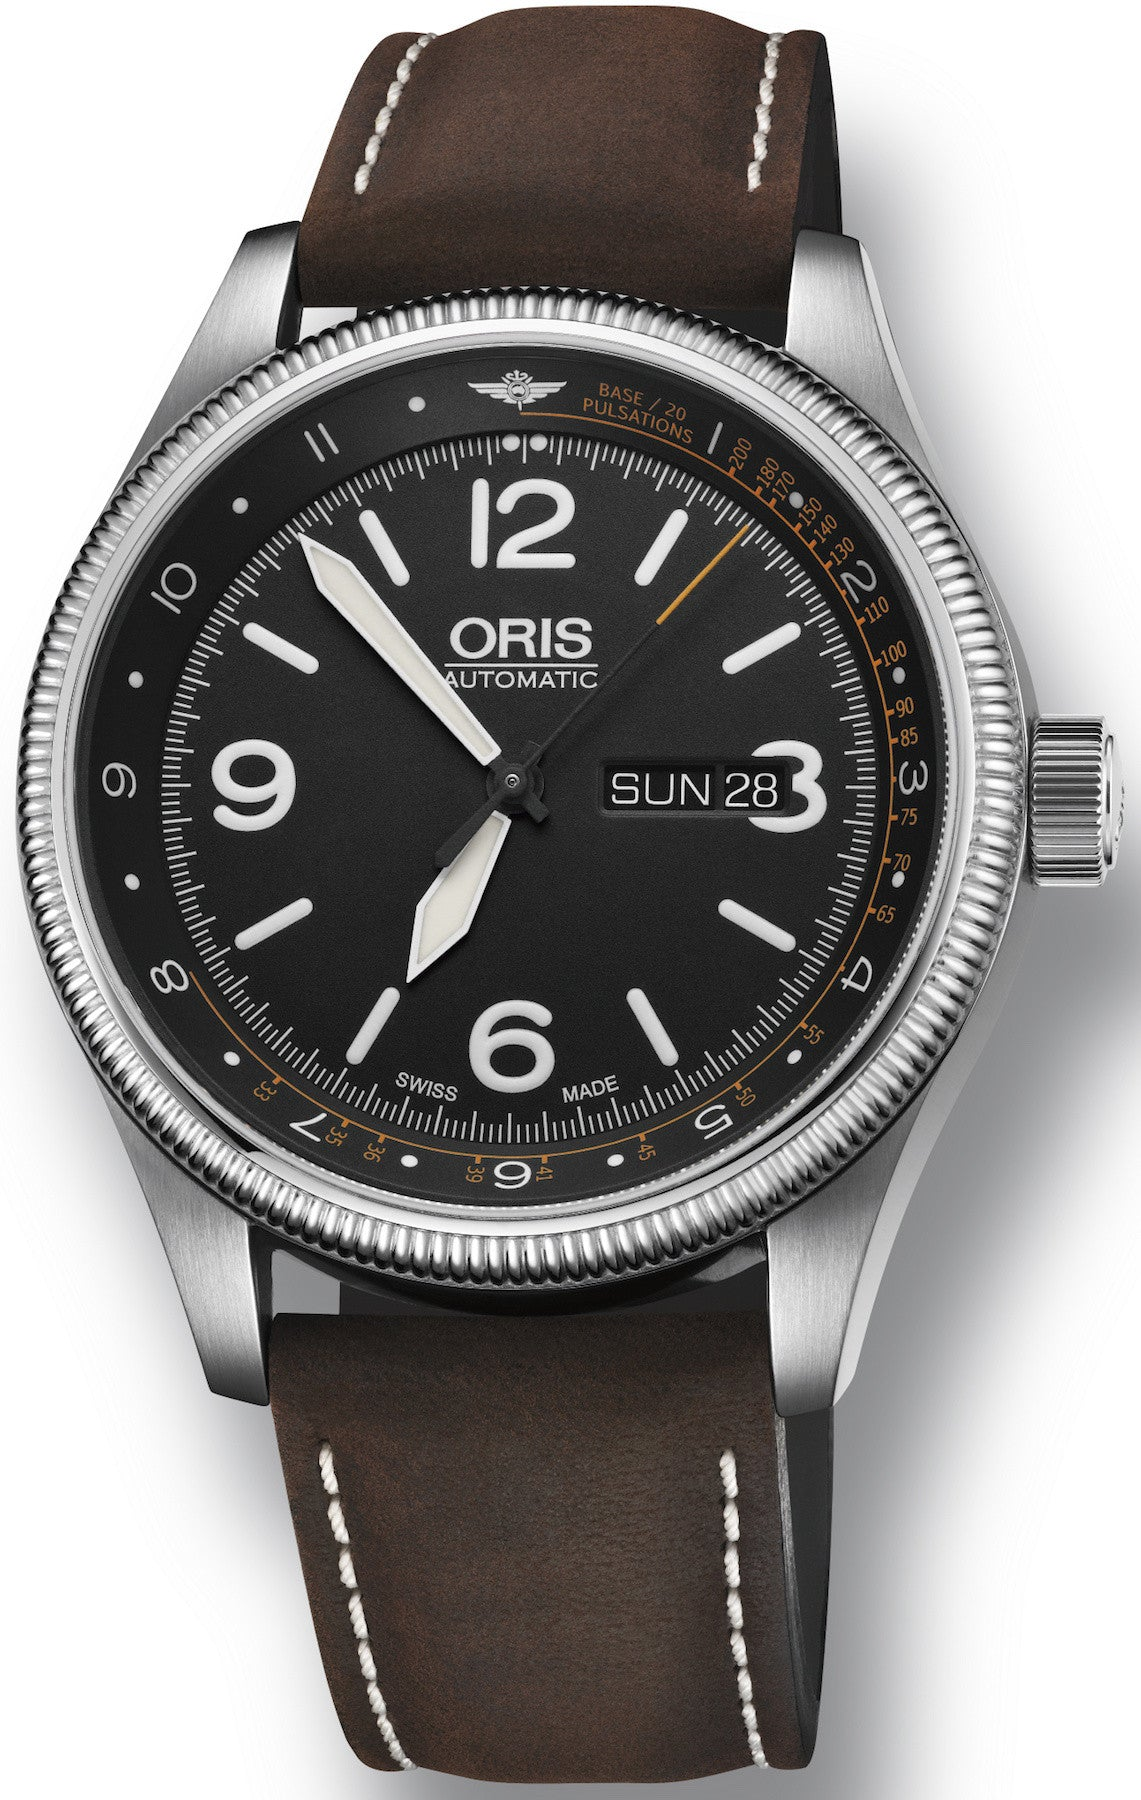 blue and was but would five black if my color have oris it new loved sixty watches liked i diver